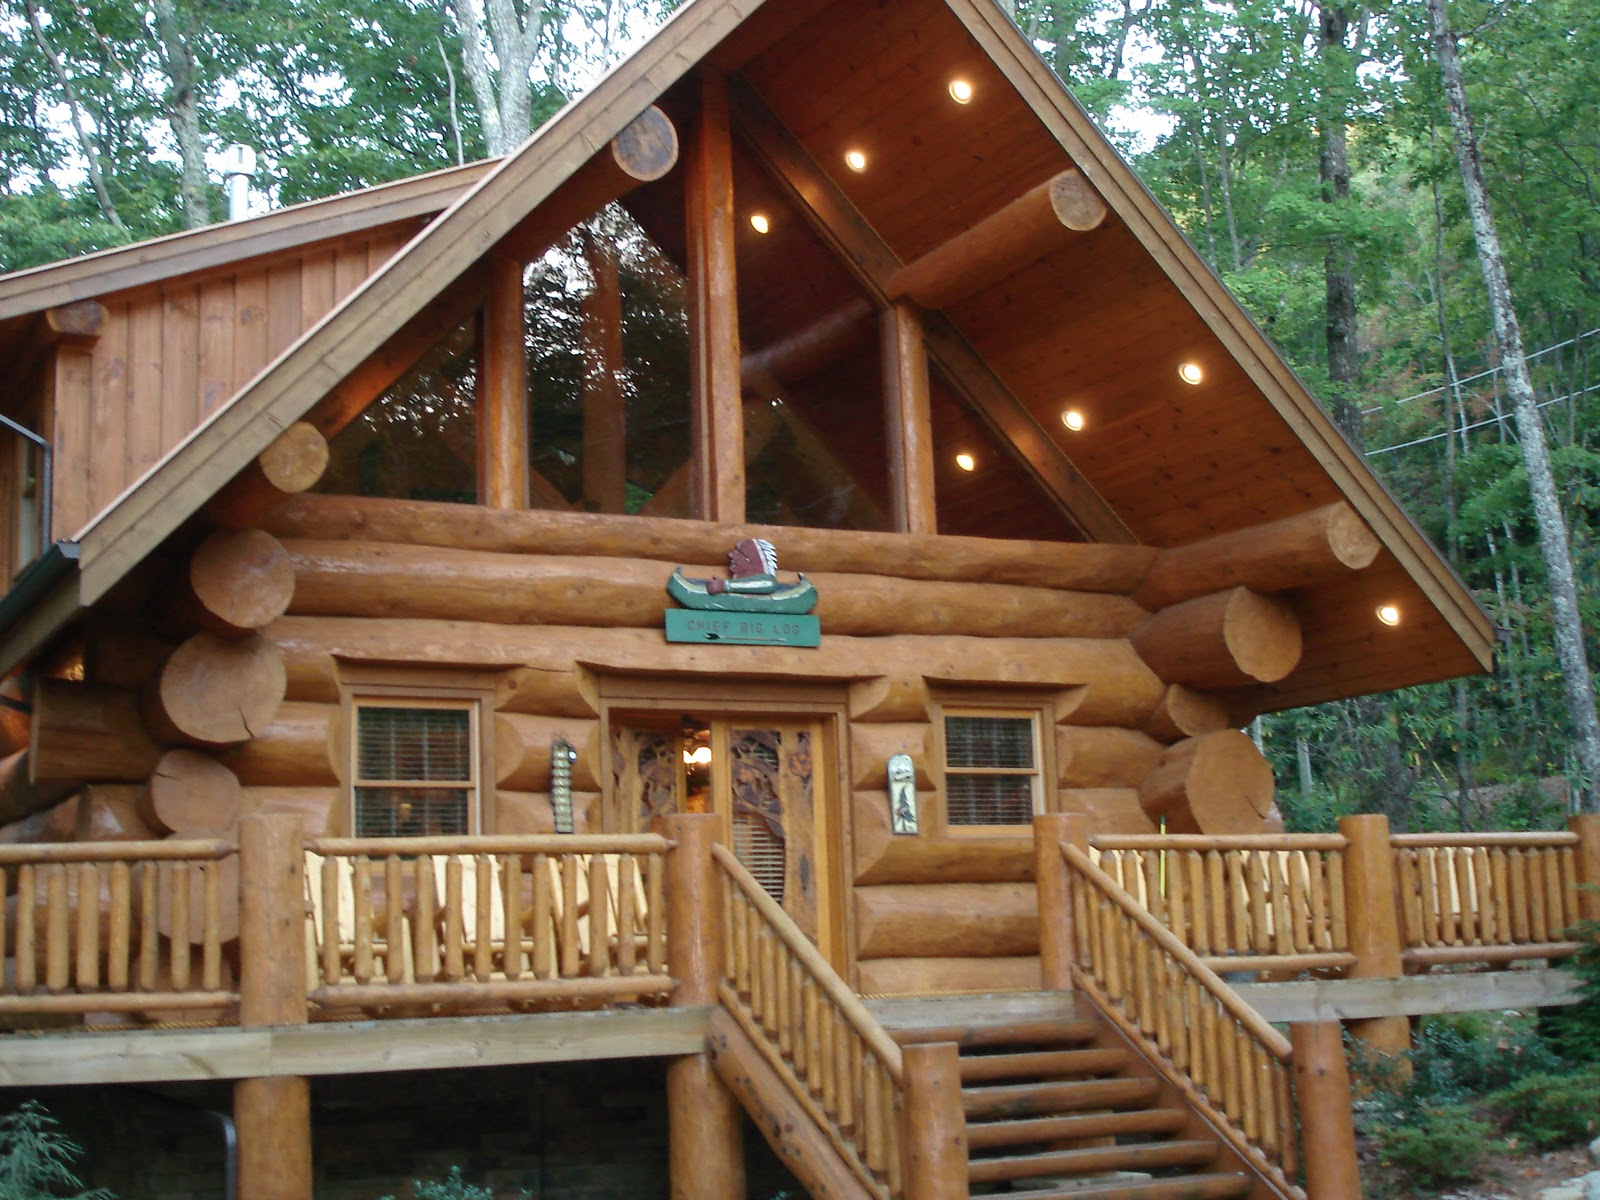 vrbo from for a rent nashville in woods near lake rental the nestled rentals hendersonville homes vacation tennessee states stunning homeaway home tn cabin luxury united cabins